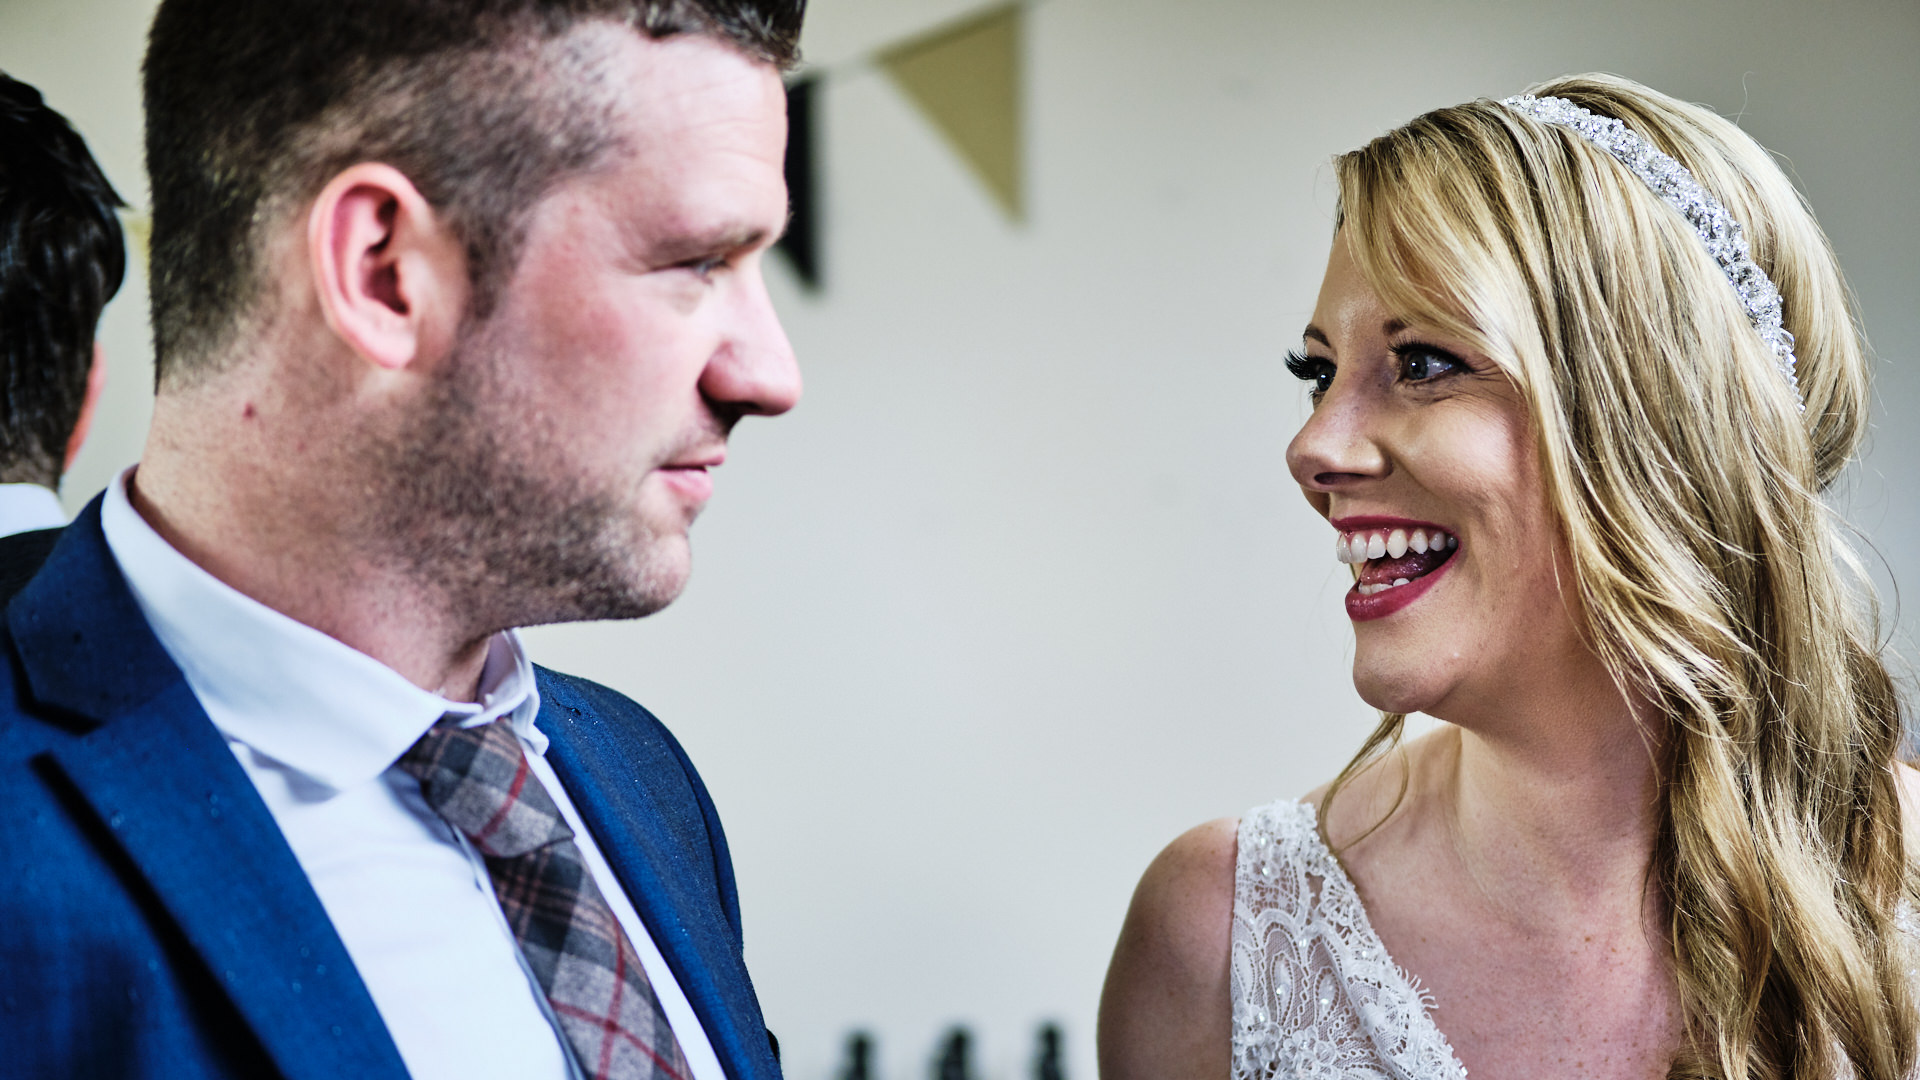 colour photograph of a smiling bride chatting to a male wedding guest during her wedding reception